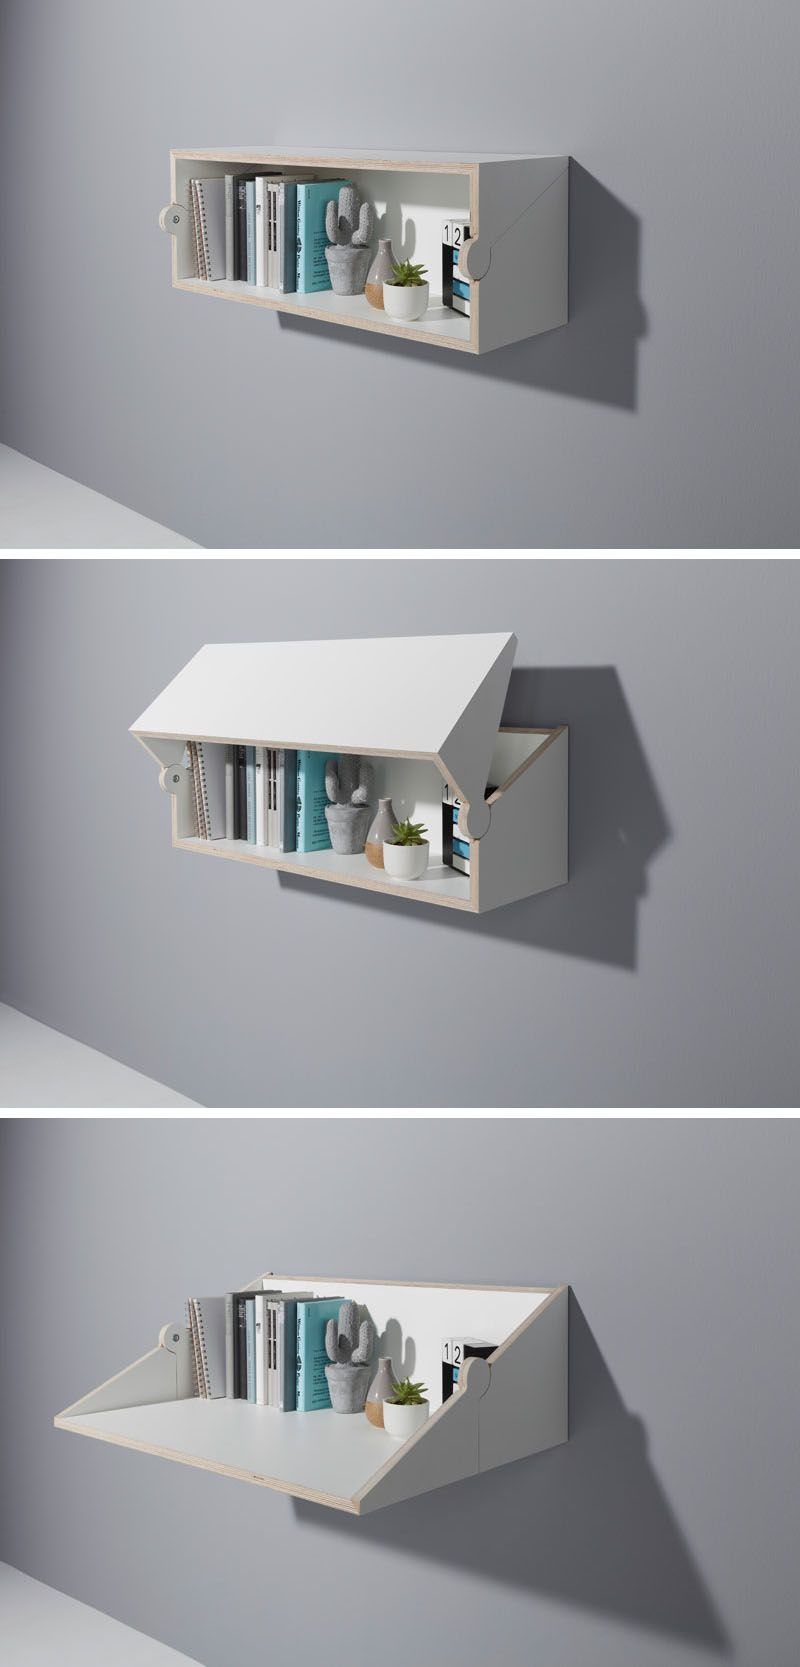 Michael hilgers has designed a floating shelf that transforms into a